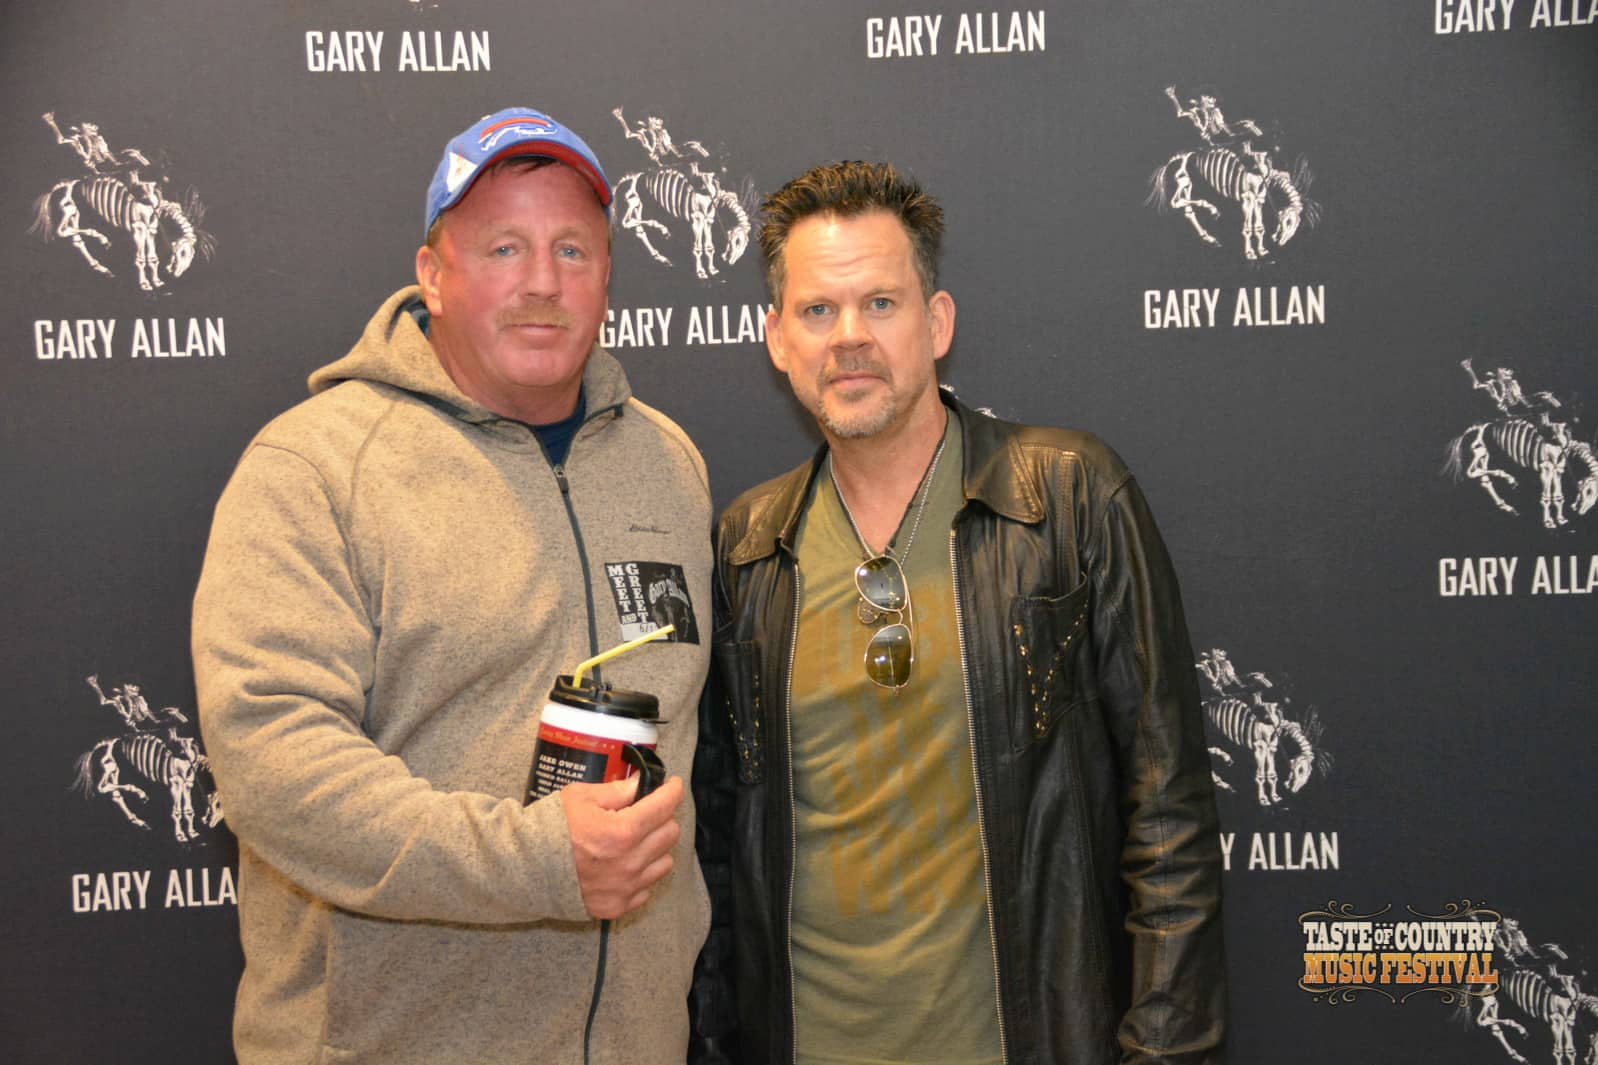 Photos Meet And Greet With Gary Allan Taste Of Country